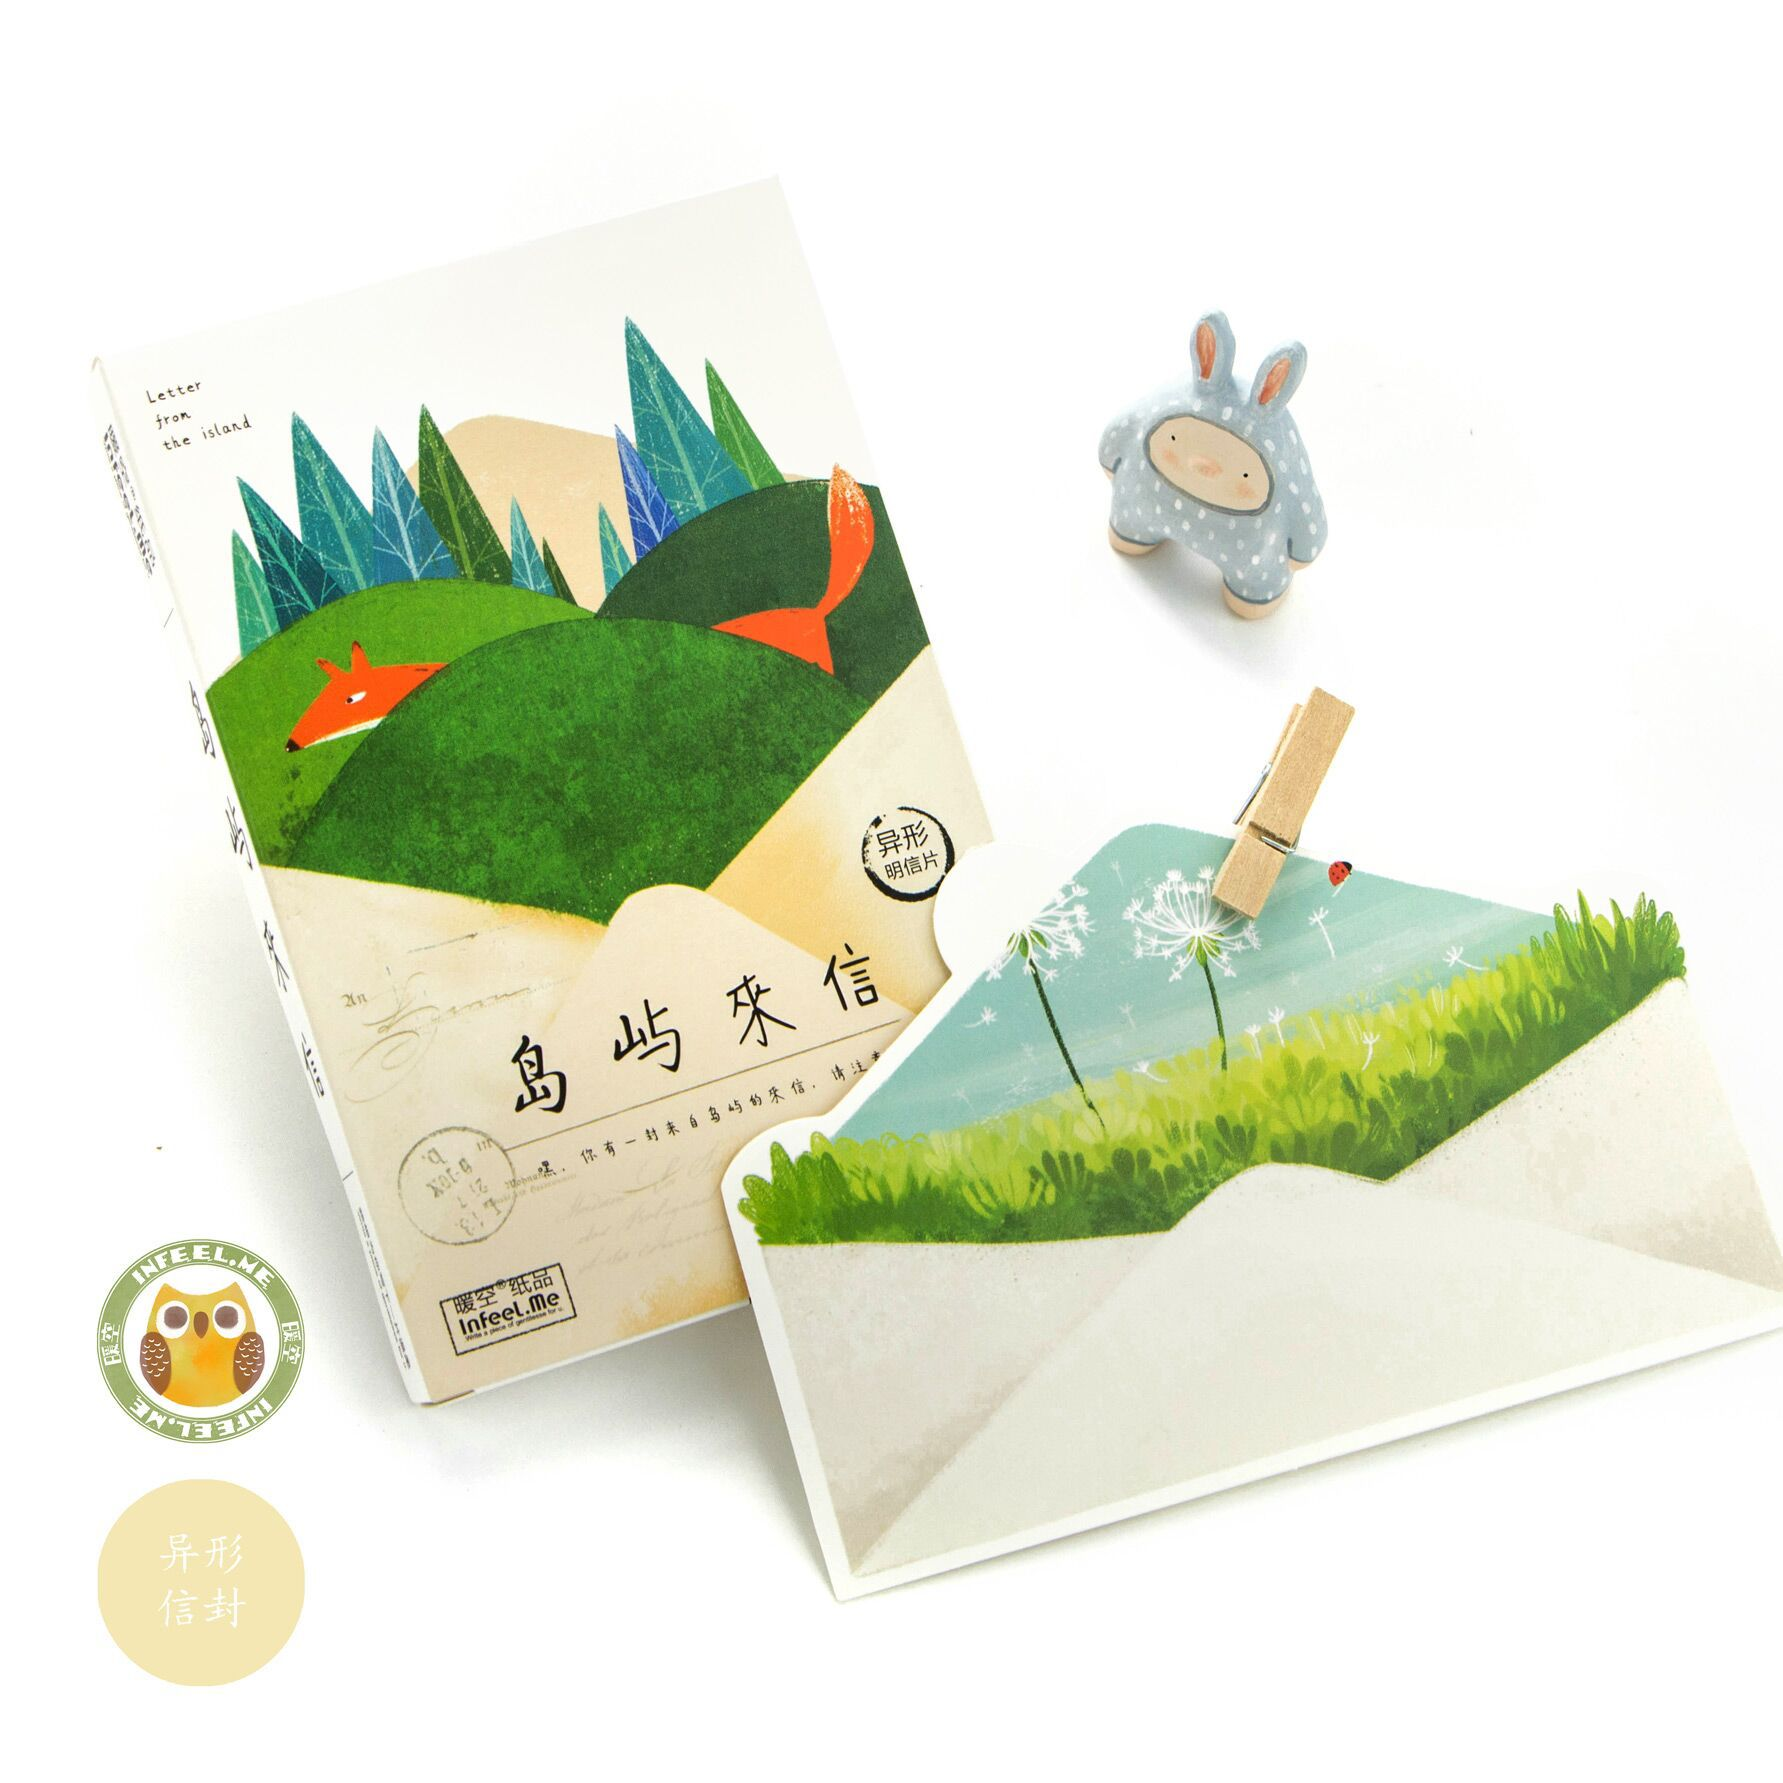 30pcs/pack A Letter from Island Japanese Kawaii Stationery Postcards DIY Card Bookmark Notes Message Card Gifts Memo 350G Paper card kraft postcards handmade 3d pop up musical greeting cards happy birthday paper with envelope gift message card for girl